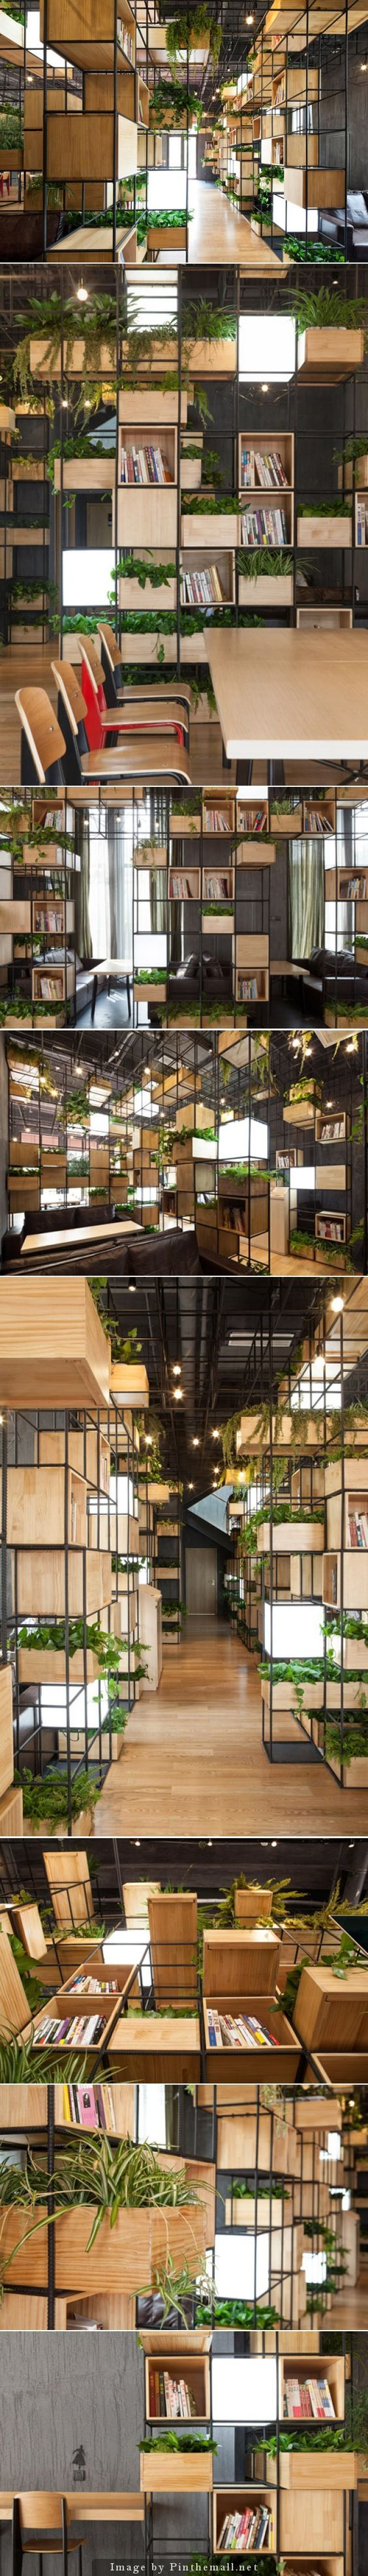 PENDA - Modular shelves & planters - Wooden box shelves and planters and…